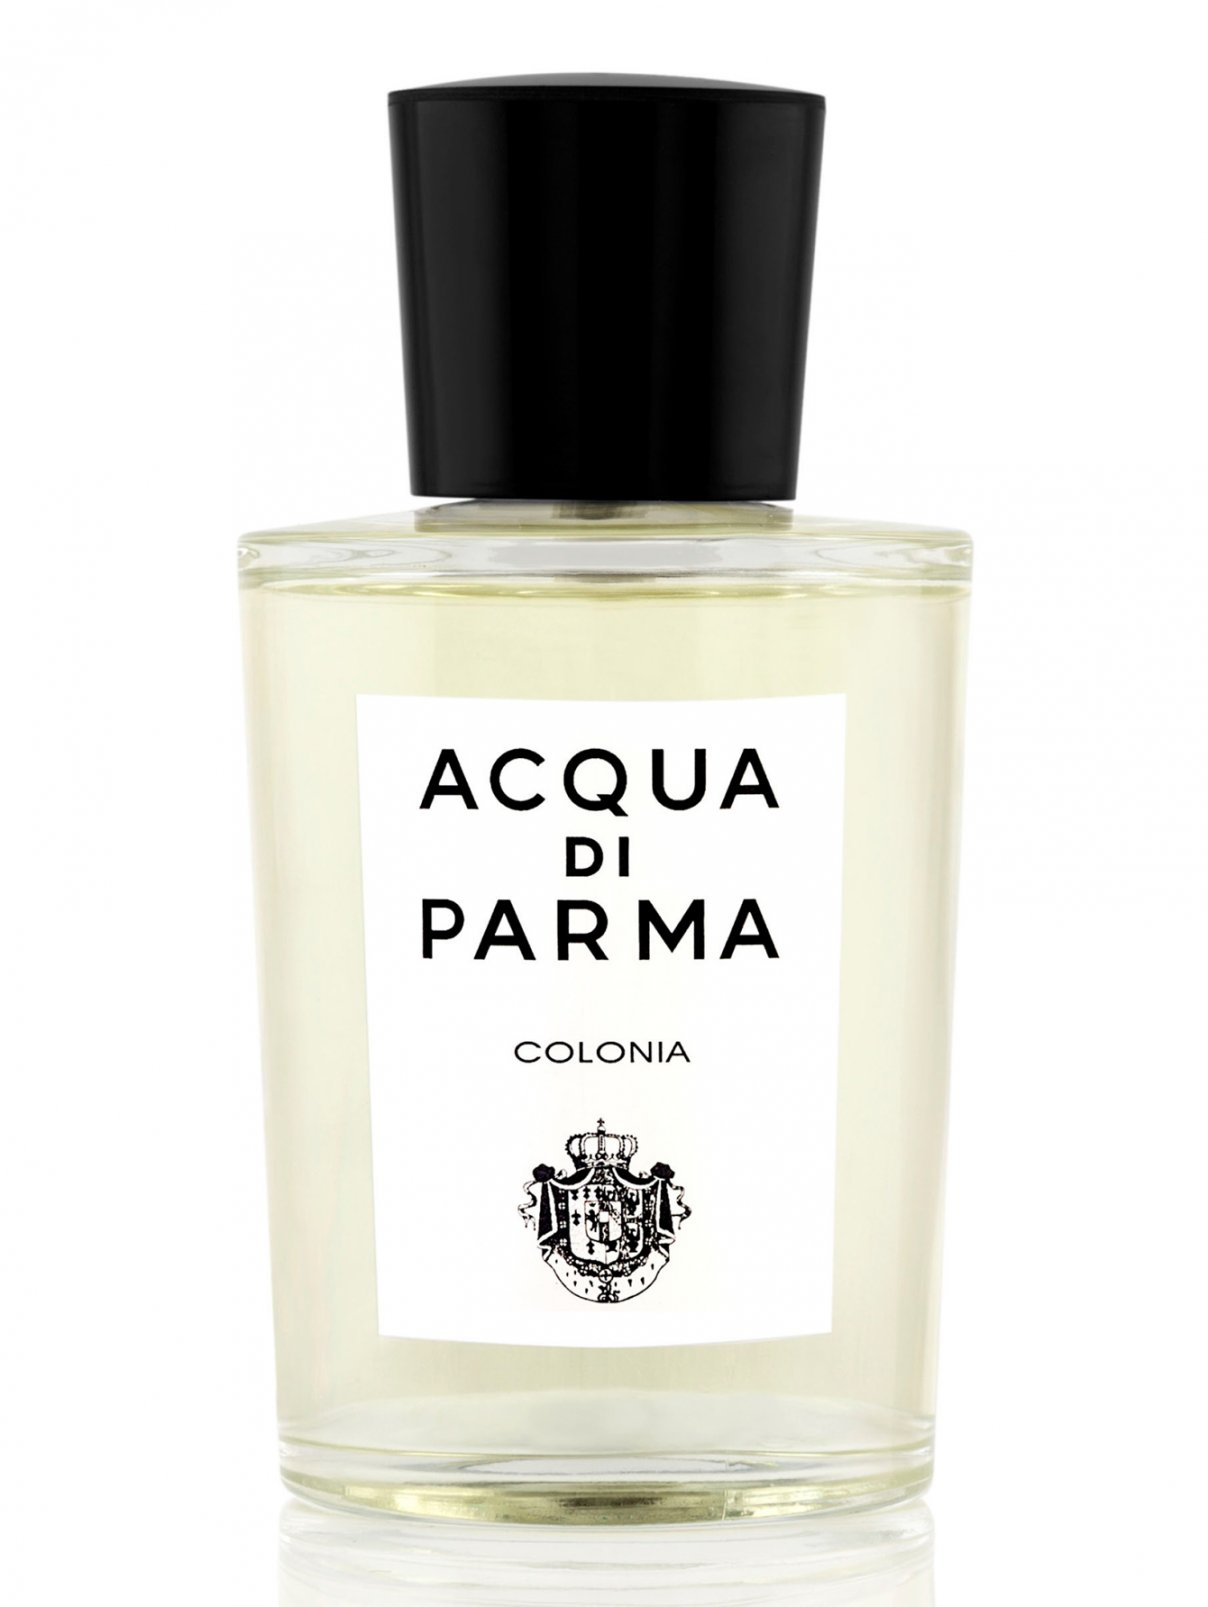 Одеколон - Colonia, 50ml Acqua di Parma  –  Общий вид